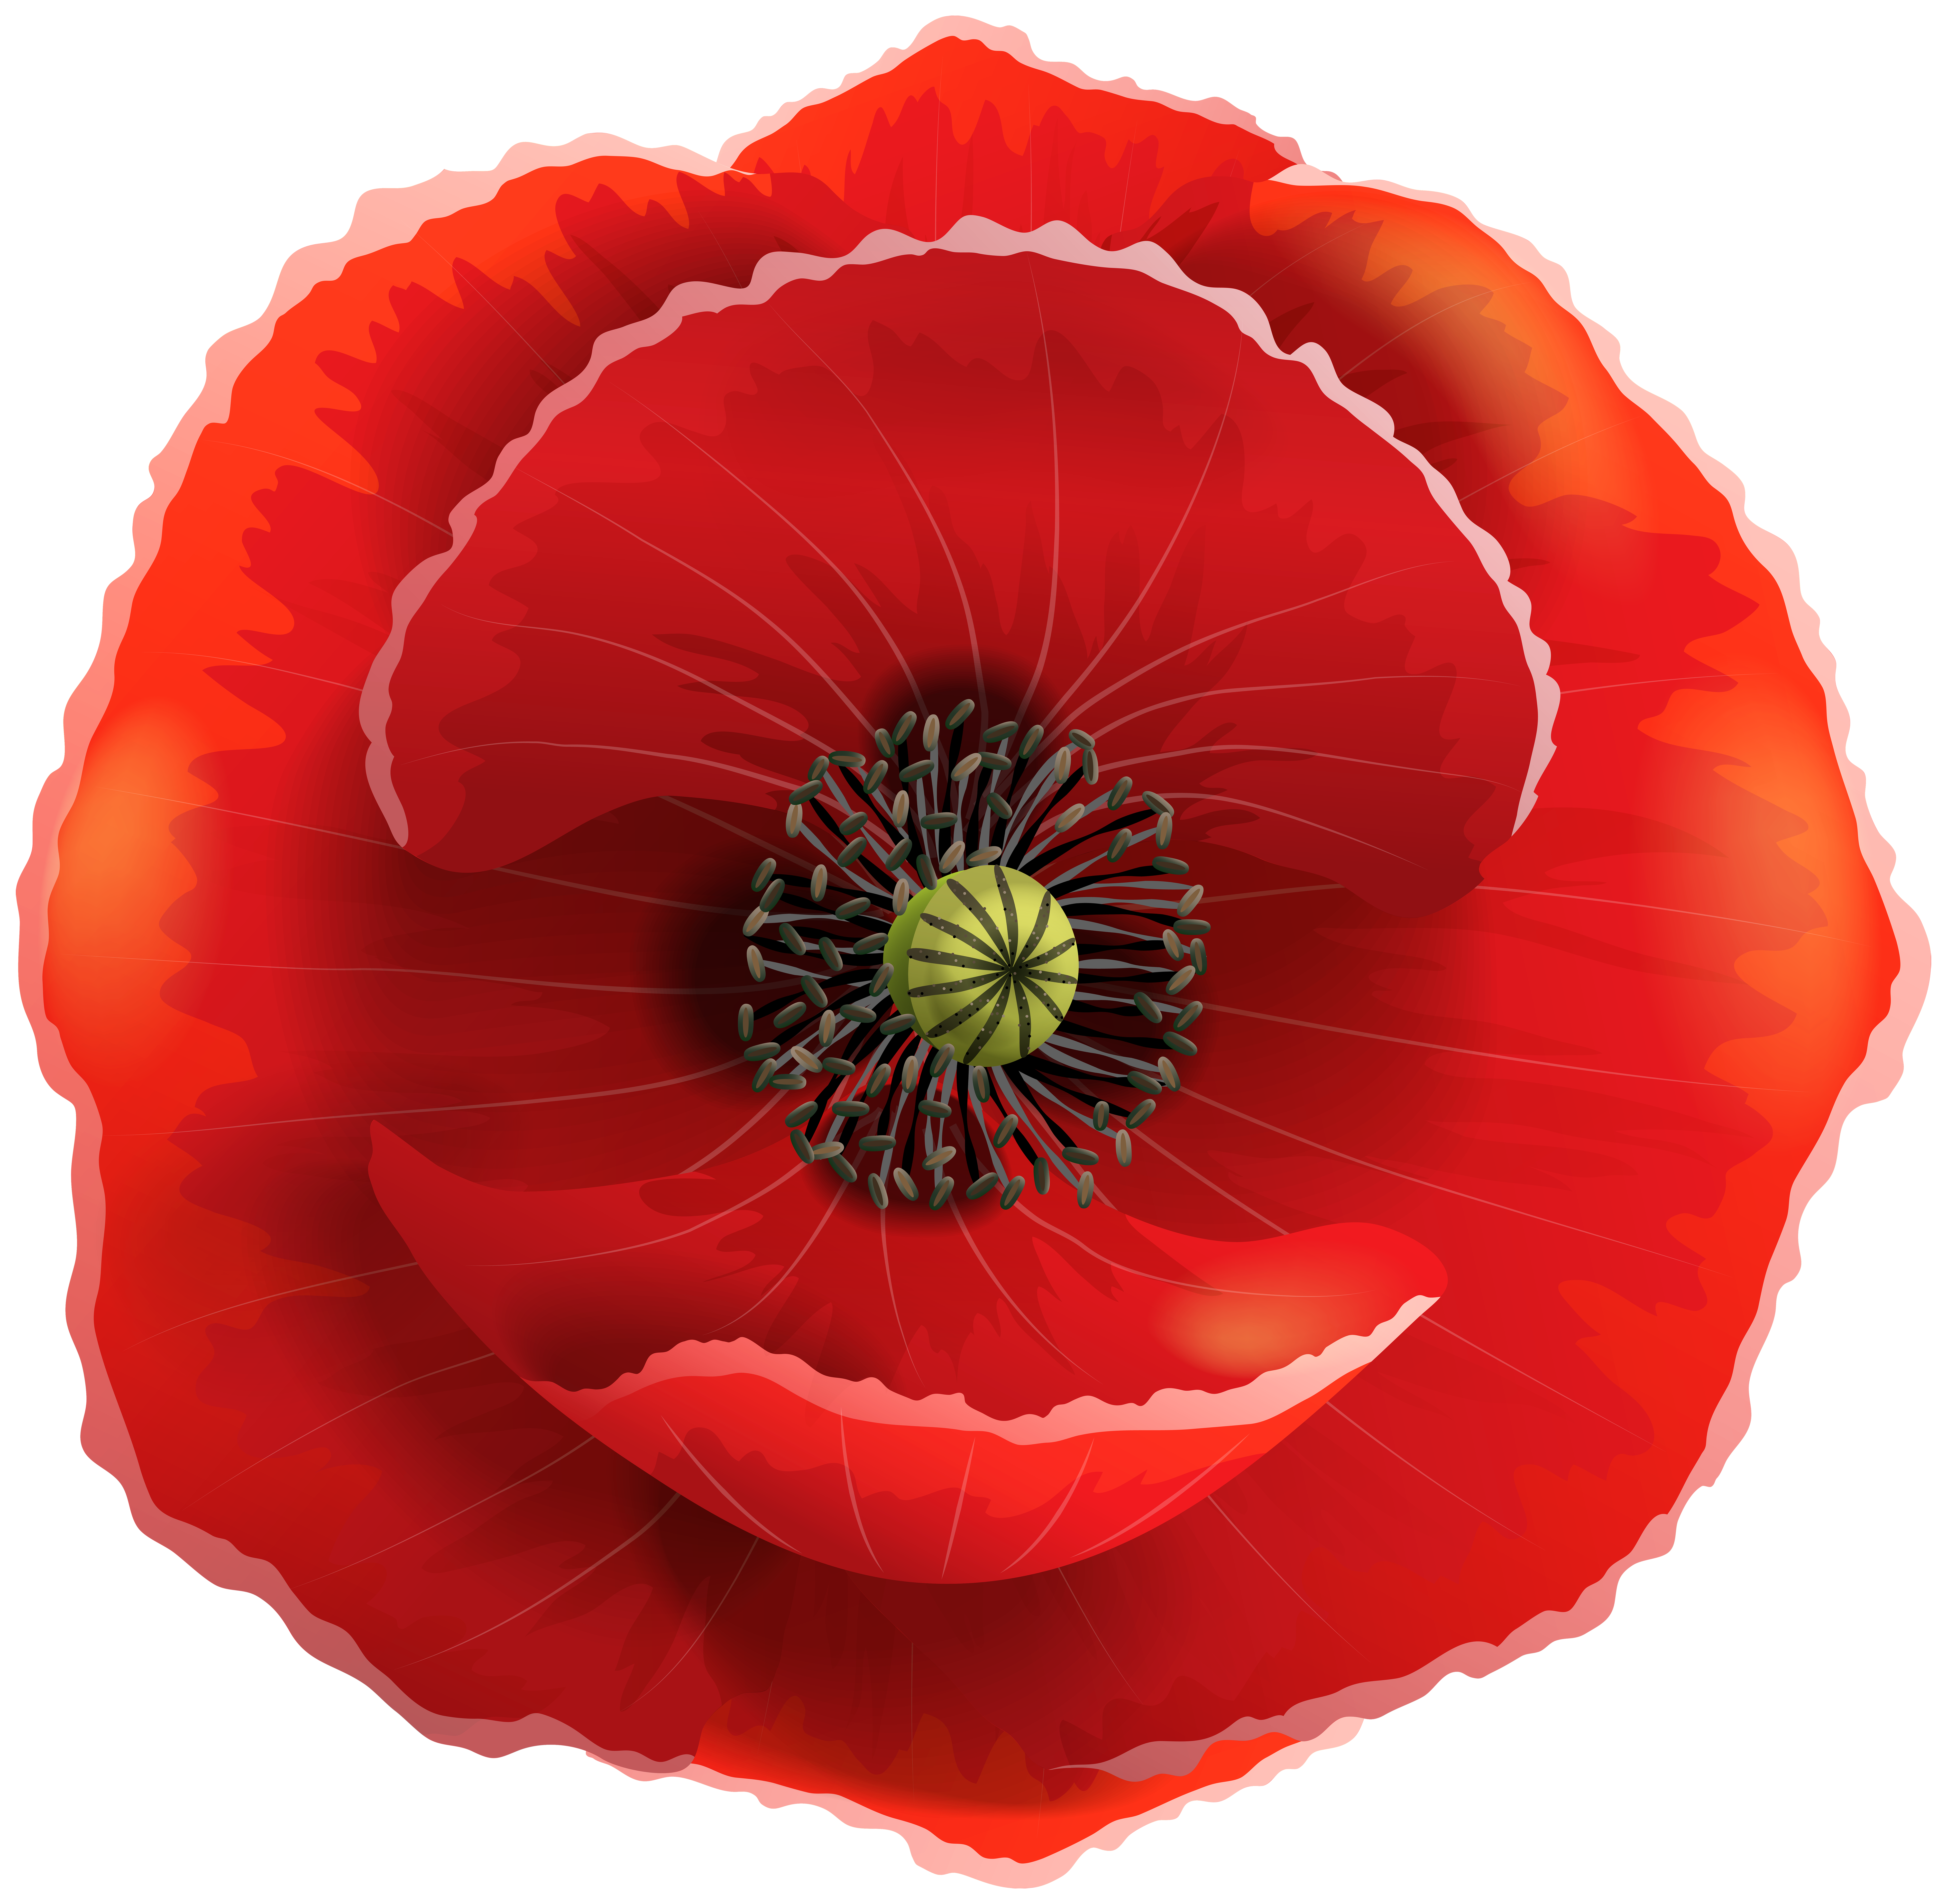 Poppy flower clipart royalty free library Poppy Transparent PNG Clip Art Image | Gallery Yopriceville - High ... royalty free library